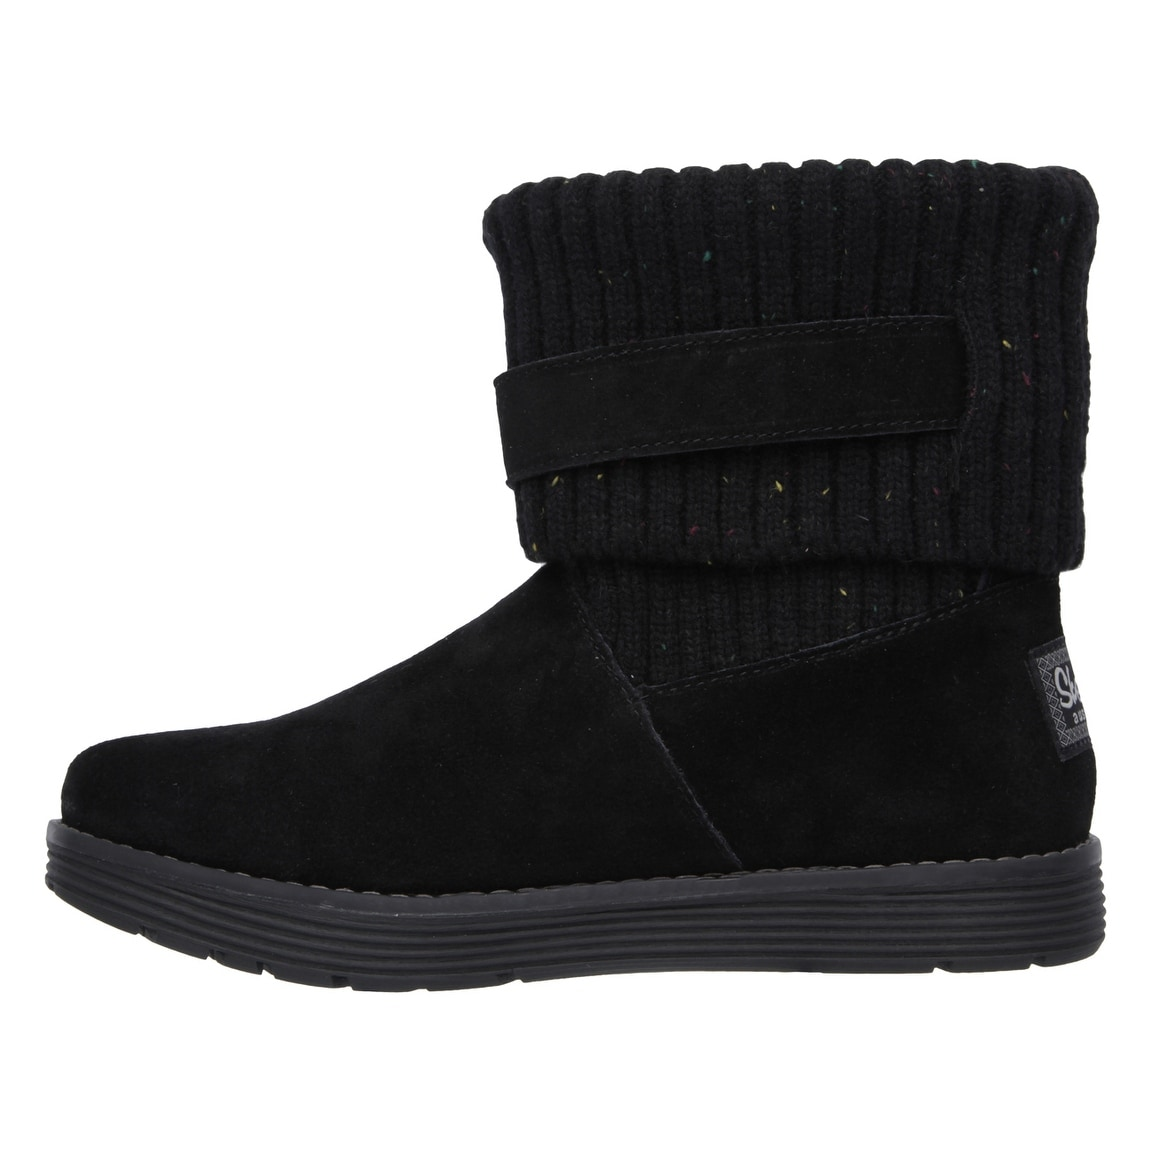 deletrear comedia Nos vemos  Sweater Trimmed Boot Snow Boot Skechers Womens Adorbs